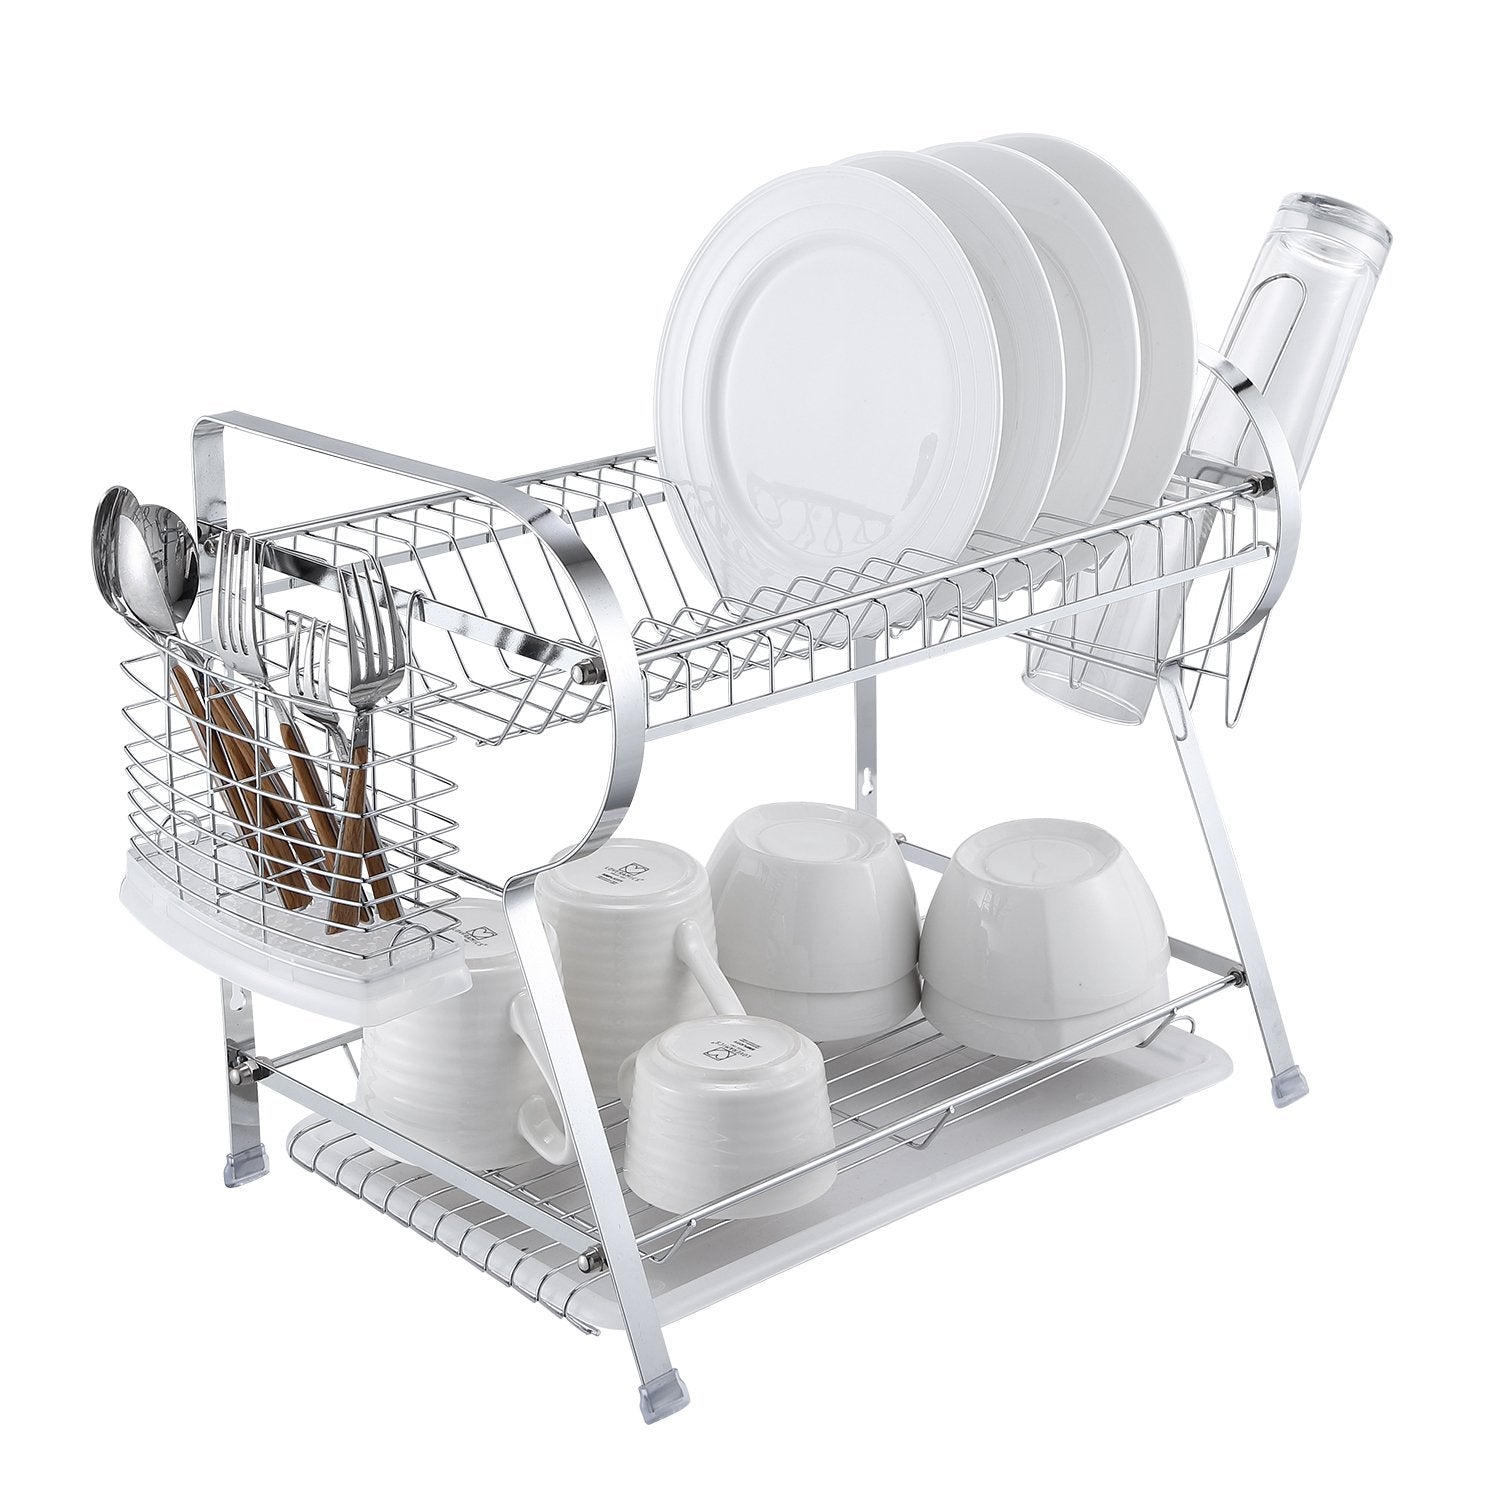 2 Tier Dish Drying Rack Kitchen Organizer with Drain Board, Chrome Finished Steel, Naturous